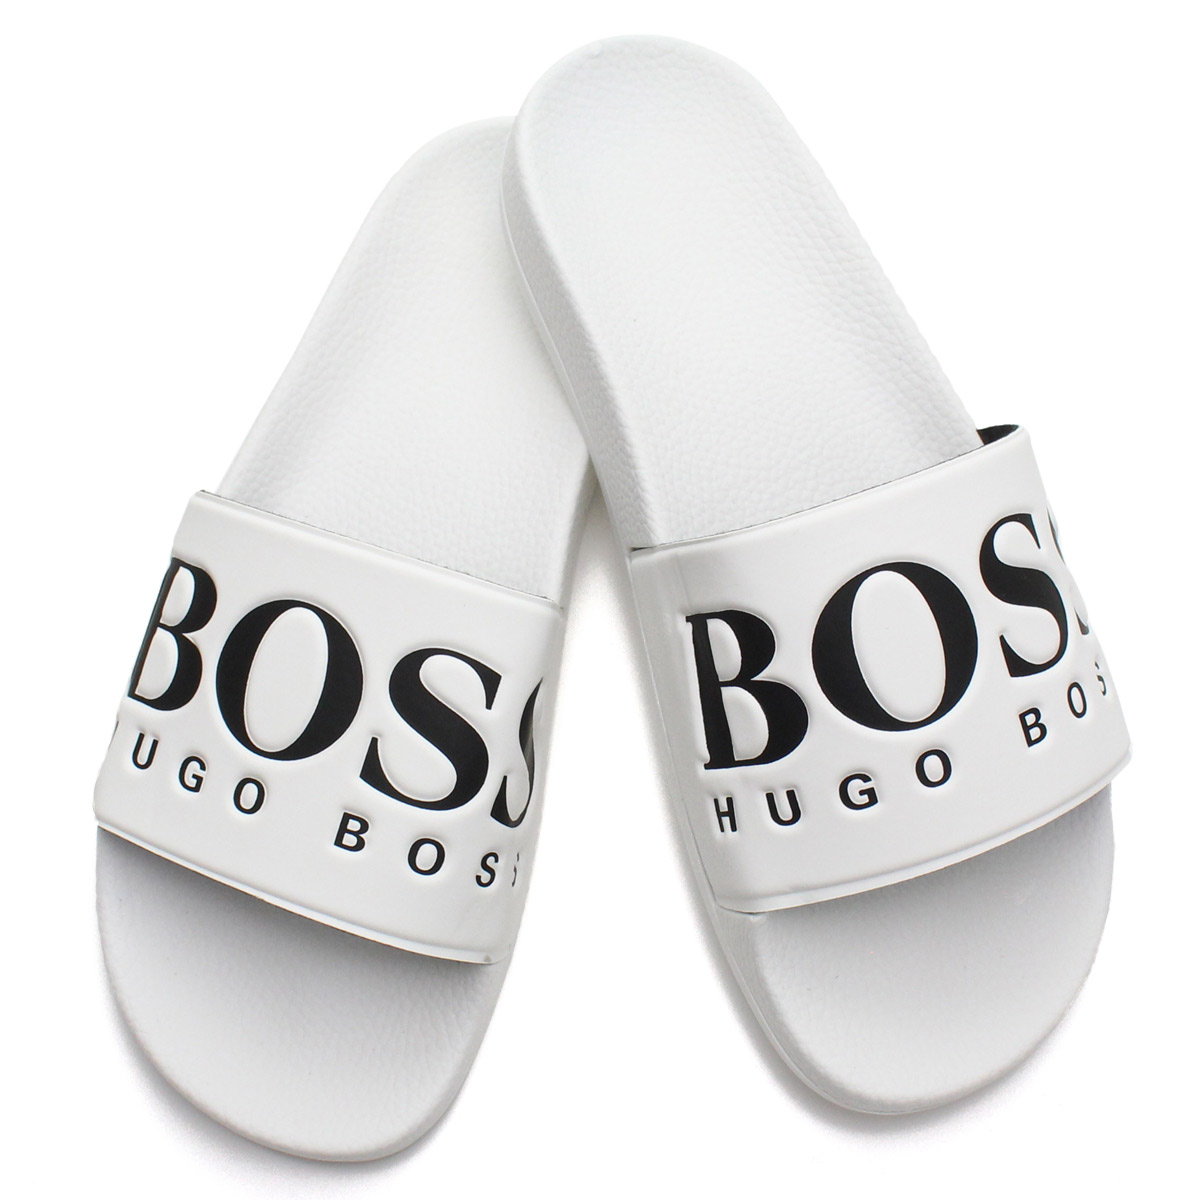 c31e73d2e It is a shower sandal of Hugo Boss. Even a beach and the poolside are sure  to get activity by a synthetic resin with the thickness resisting the water  wet ...